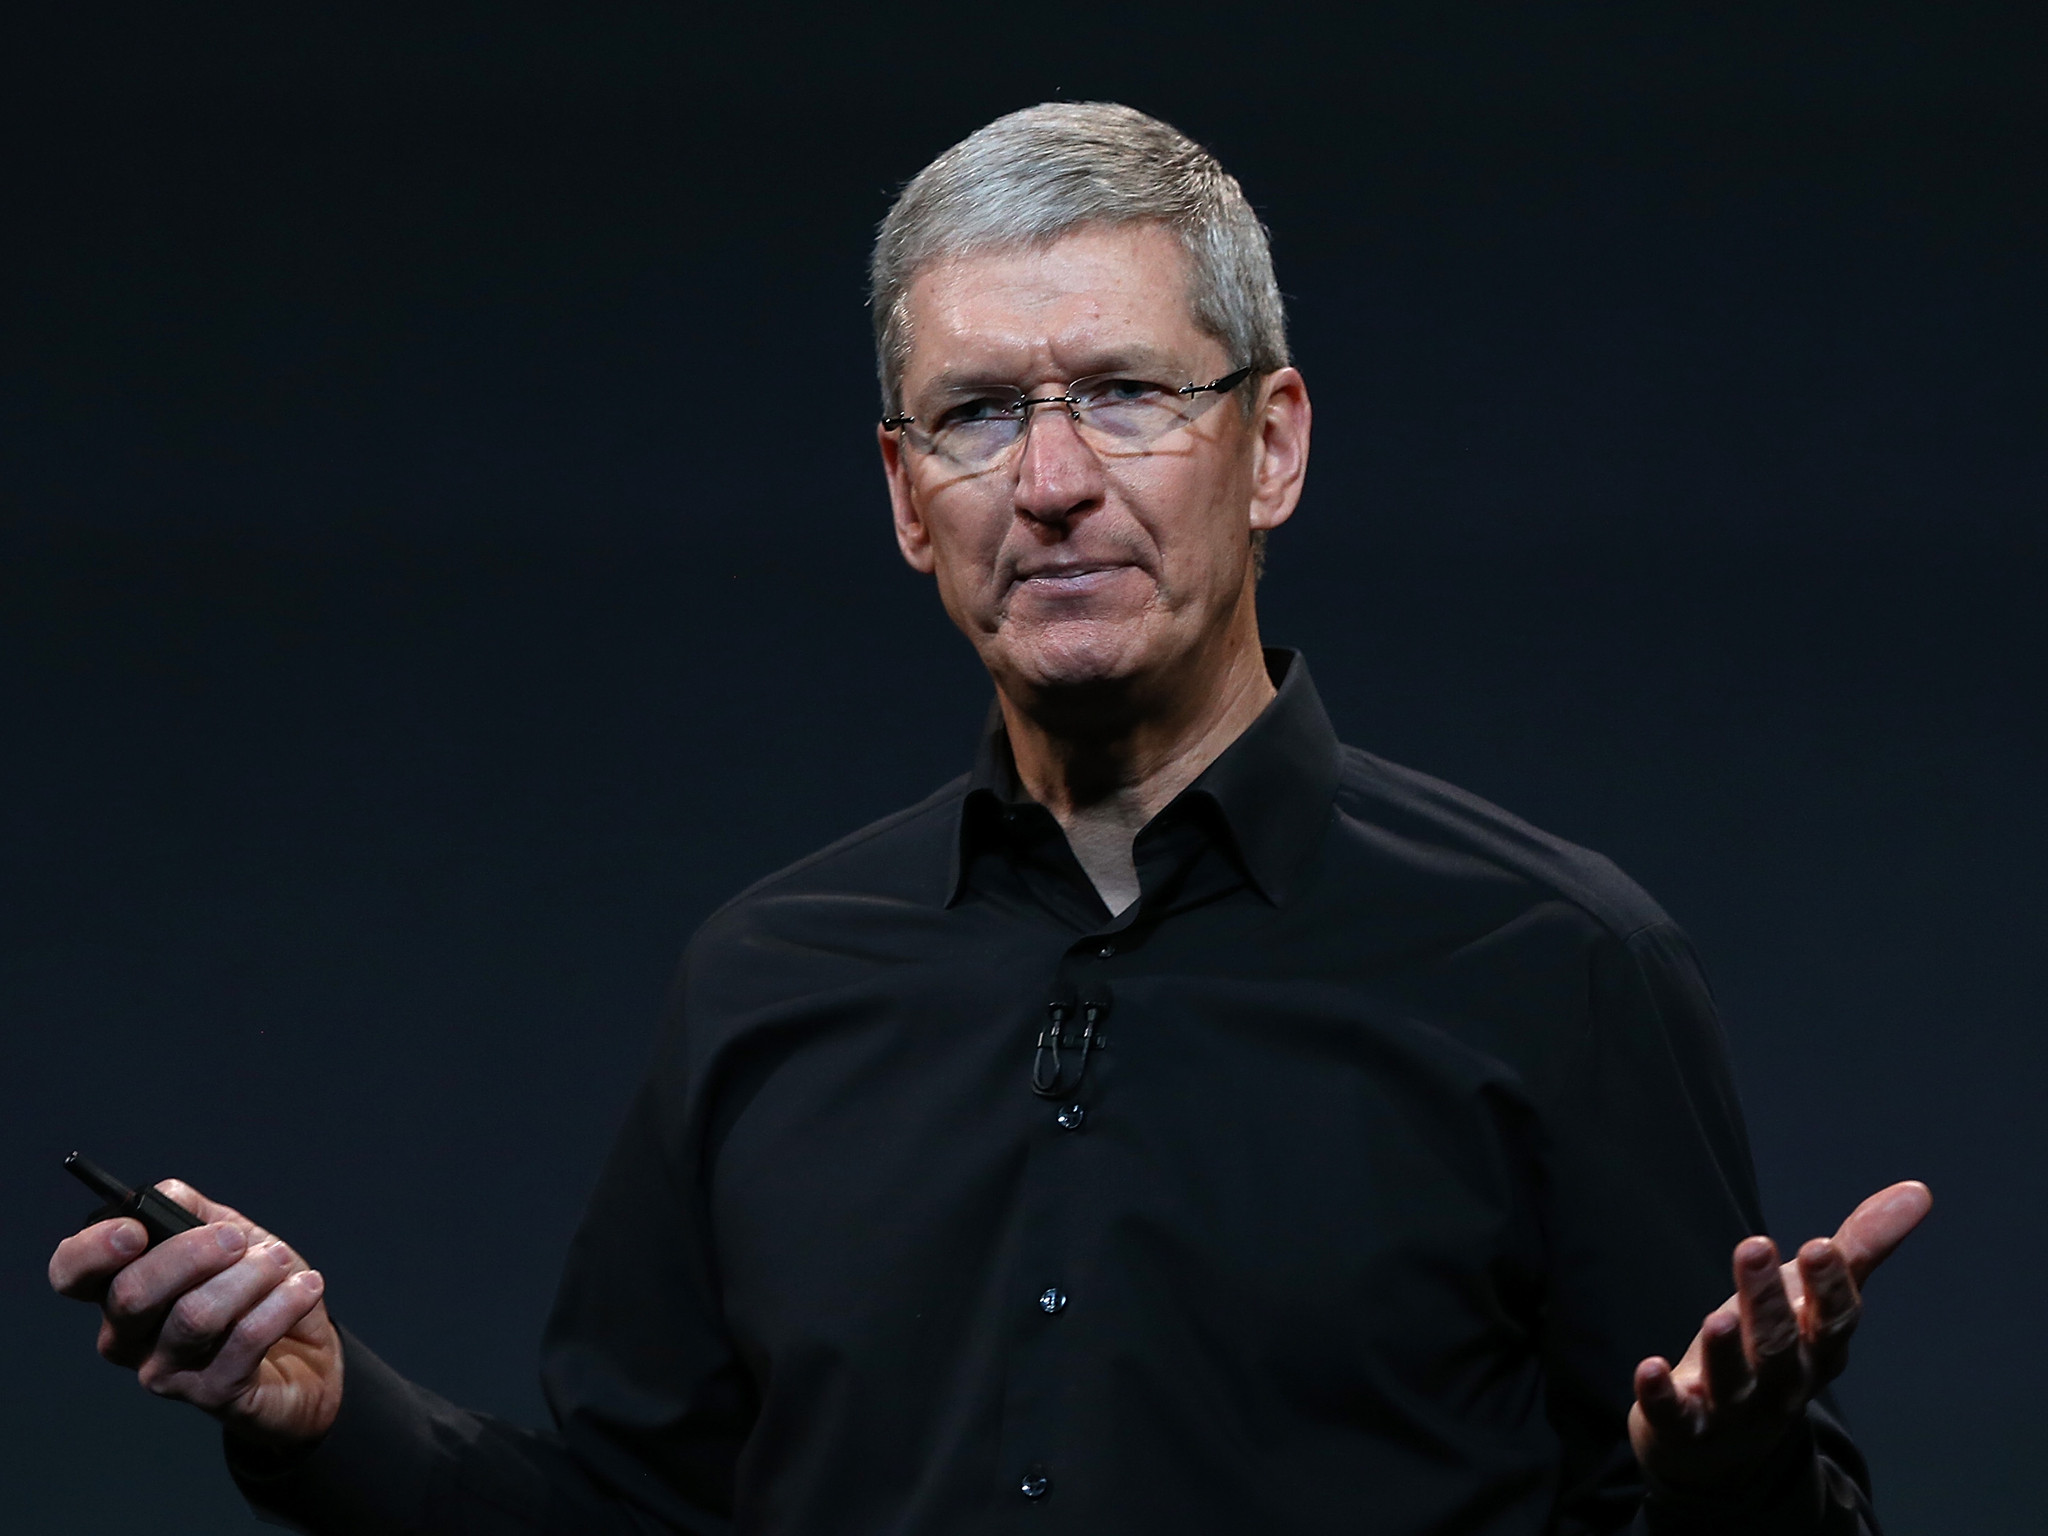 2048x1536 - Tim Cook Wallpapers 31